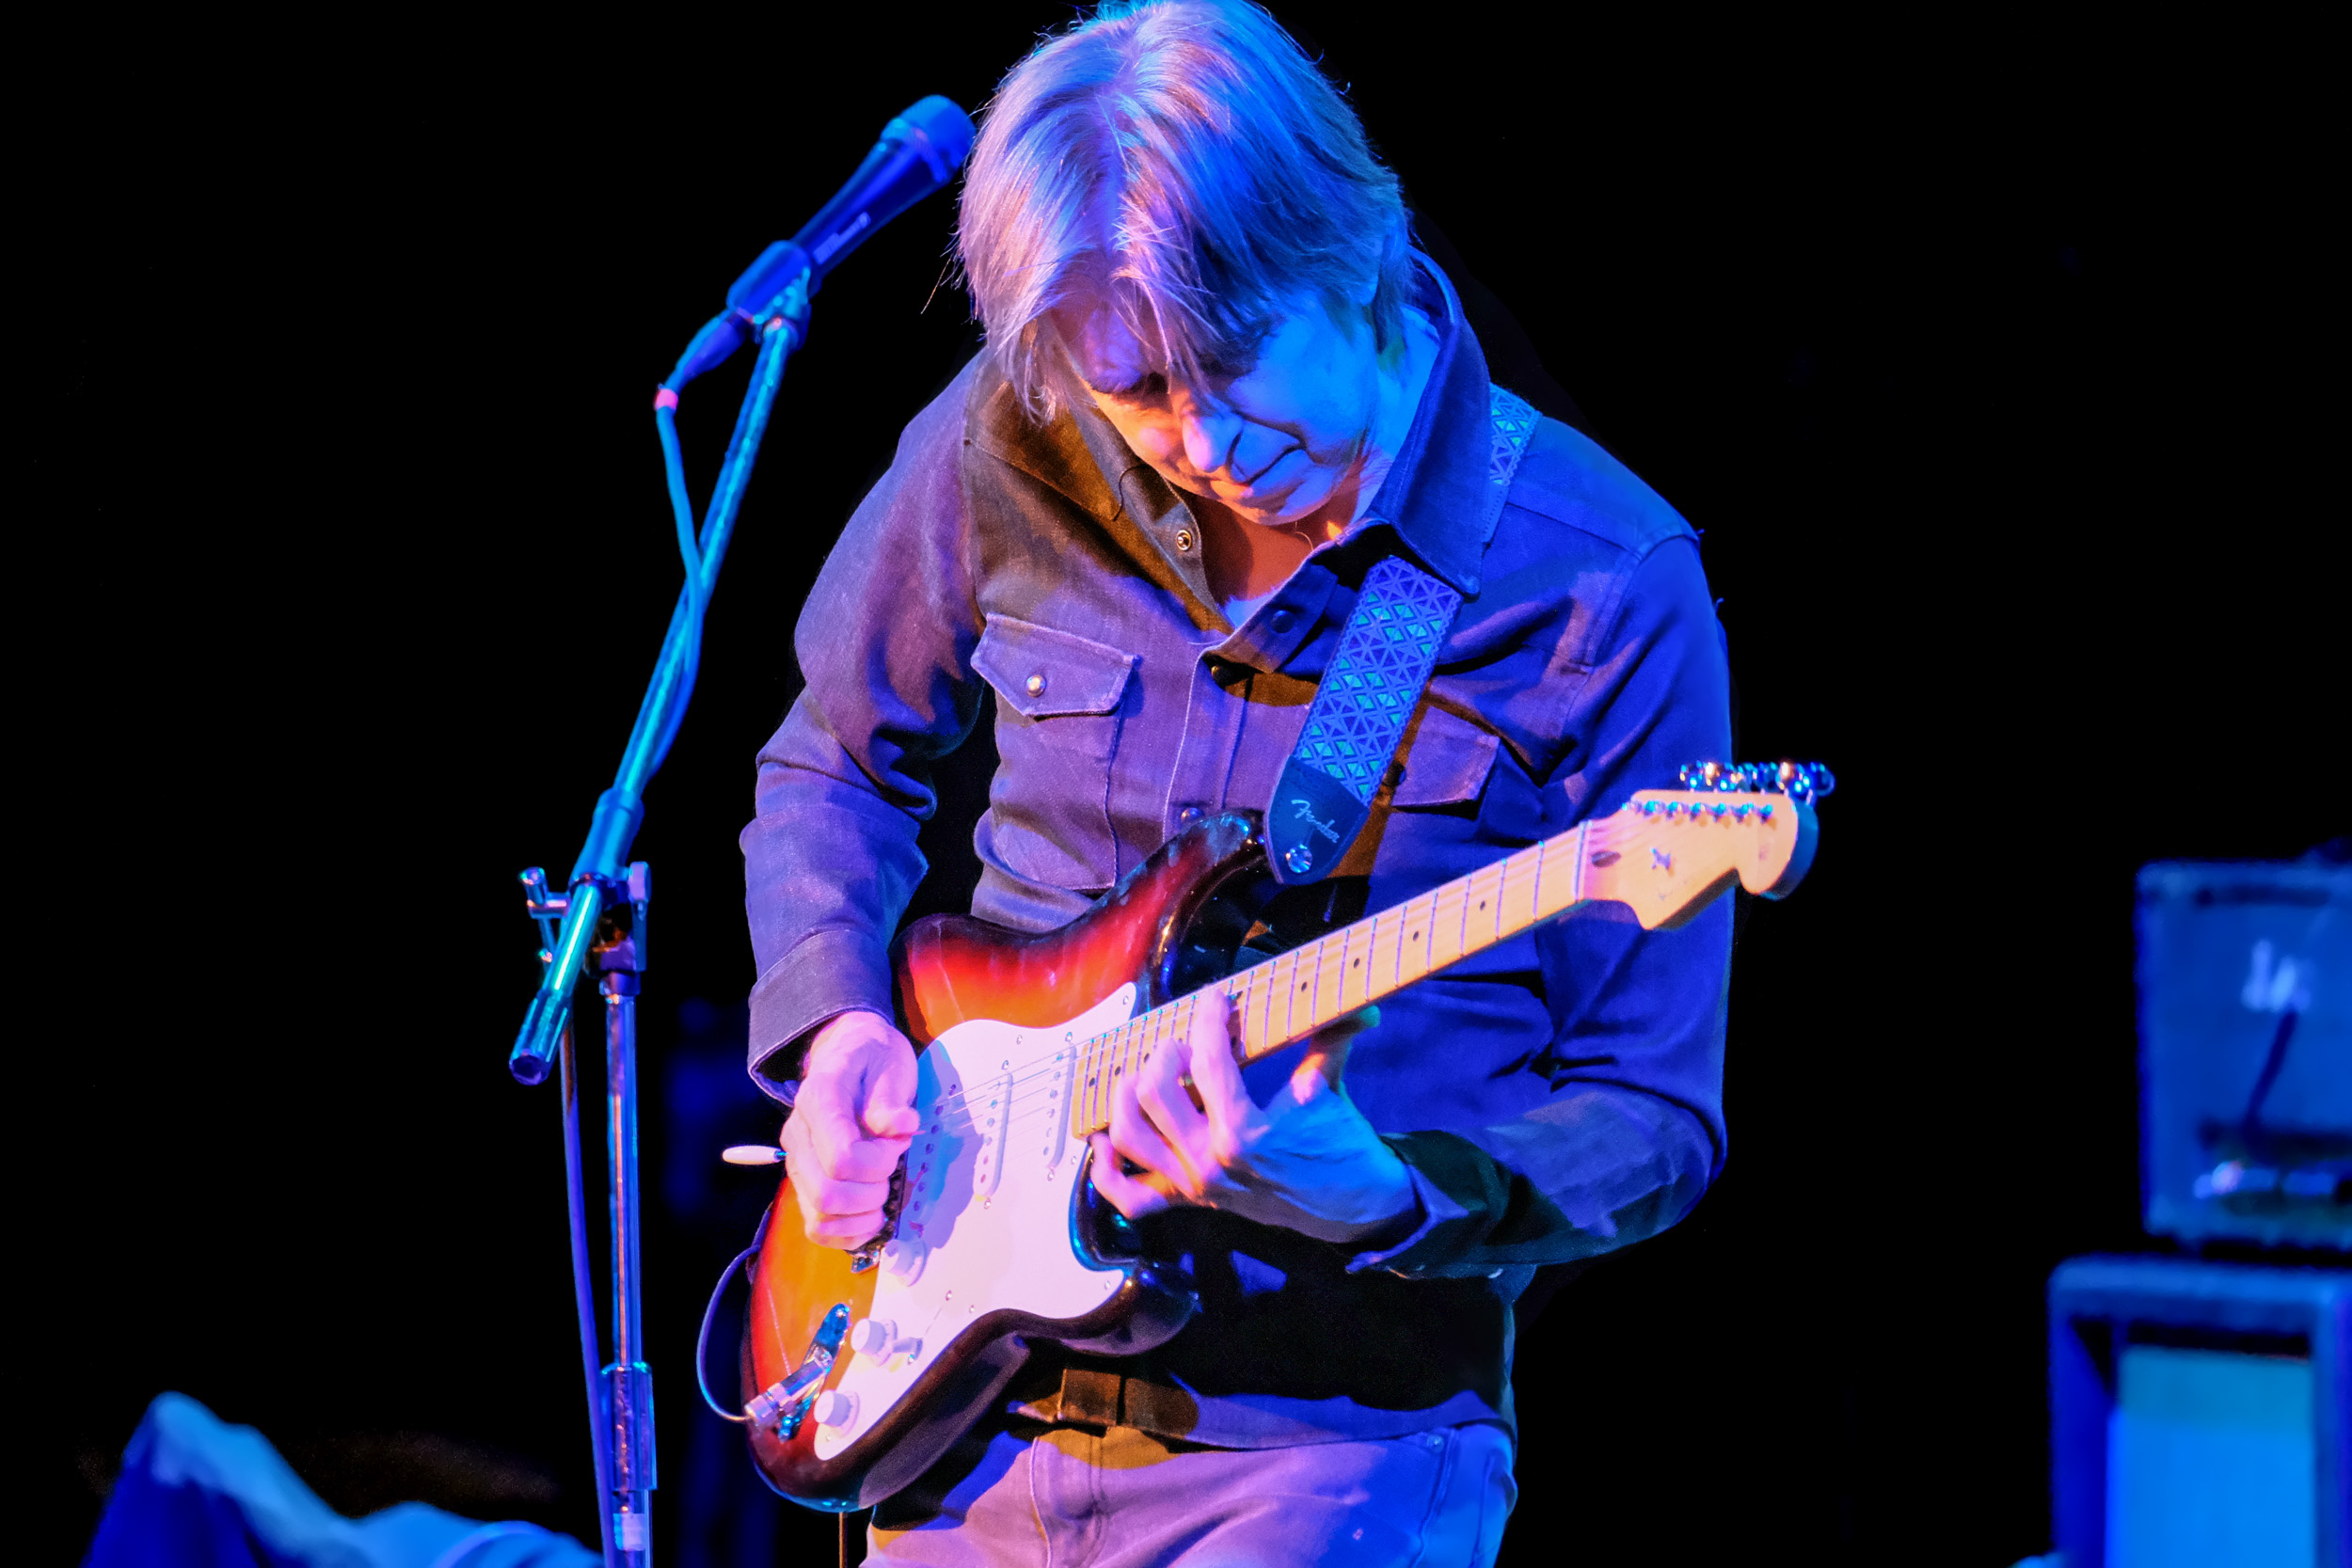 Eric Johnson performs in concert on his tour Classics: Present and Past at The Aztec Theatre on January 30, 2020 in San Antonio, Texas. Photo © Manuel Nauta